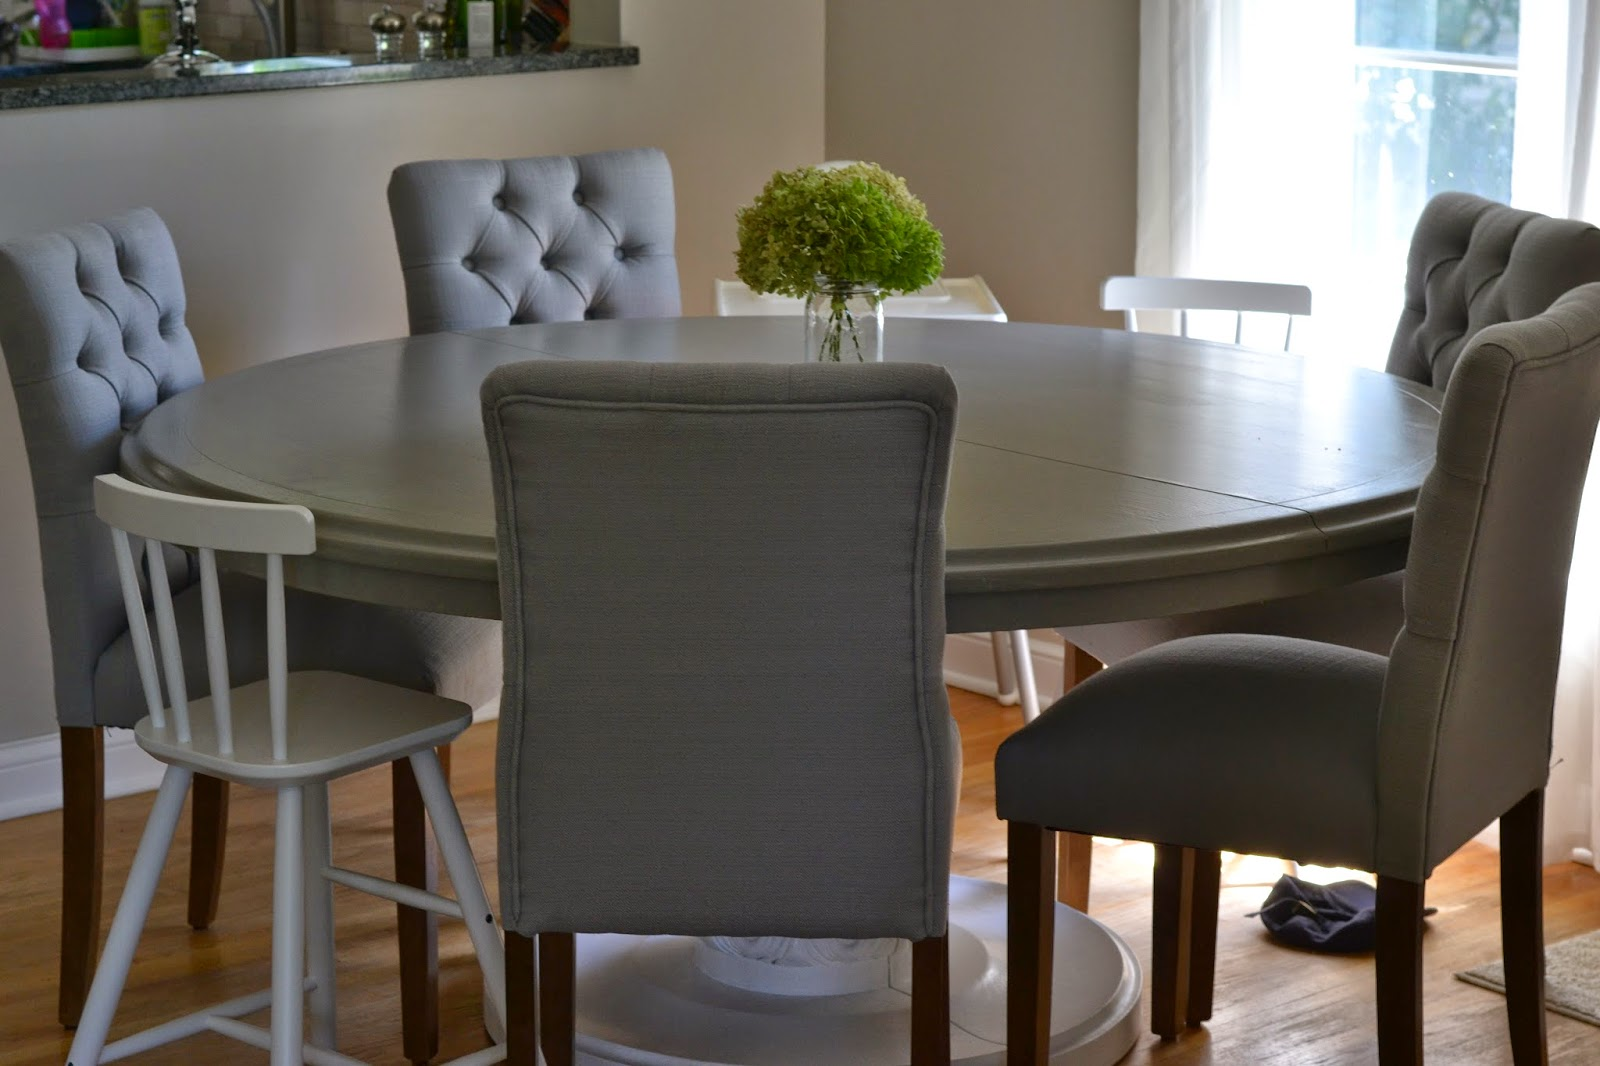 http://www.getagrif.com/2014/08/dining-room-table-makeover.html